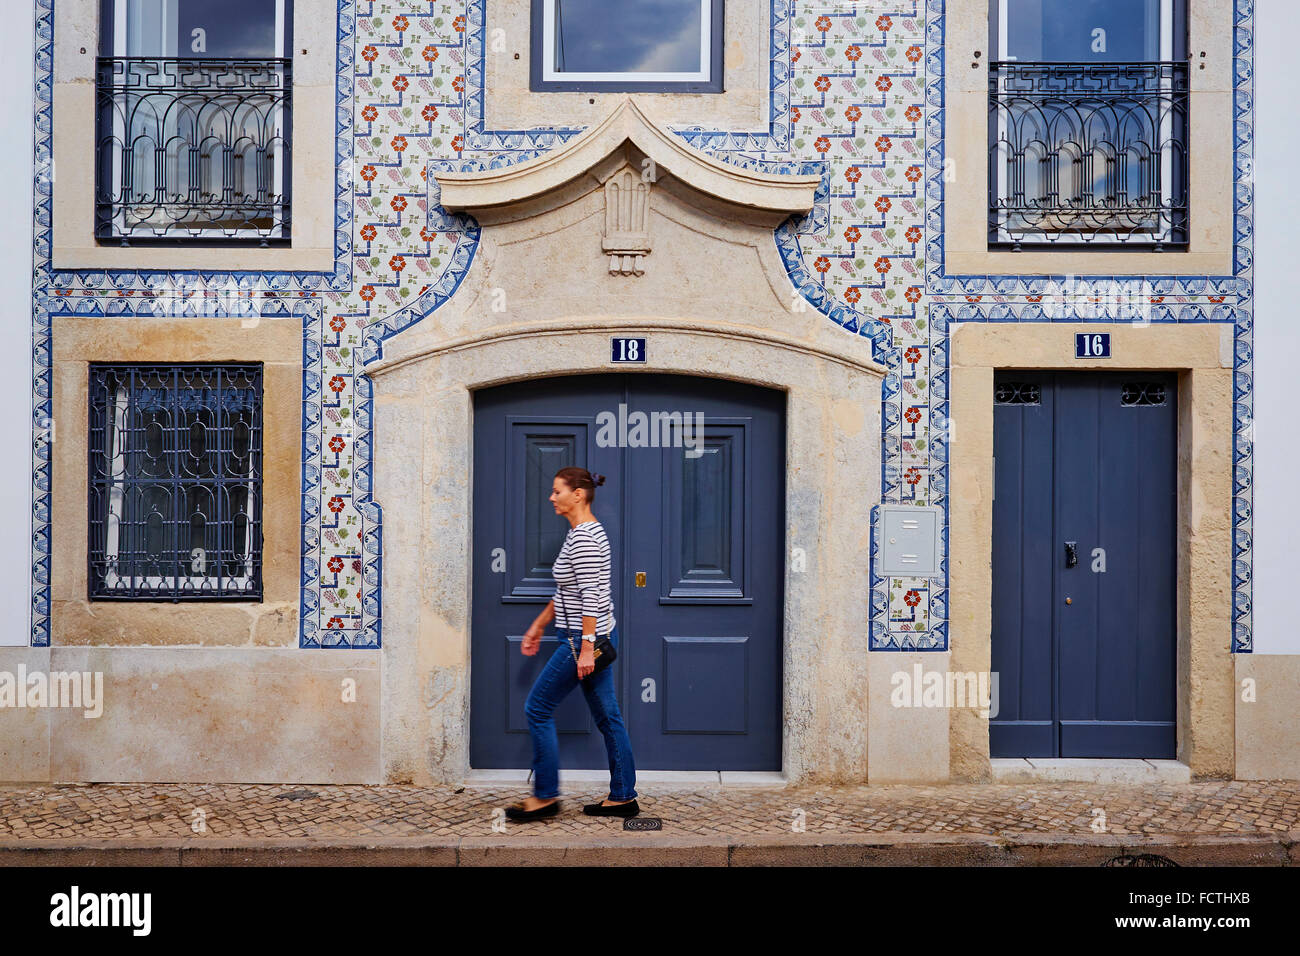 Portugal, Lisbon, Alfama frontage of a appartement - Stock Image